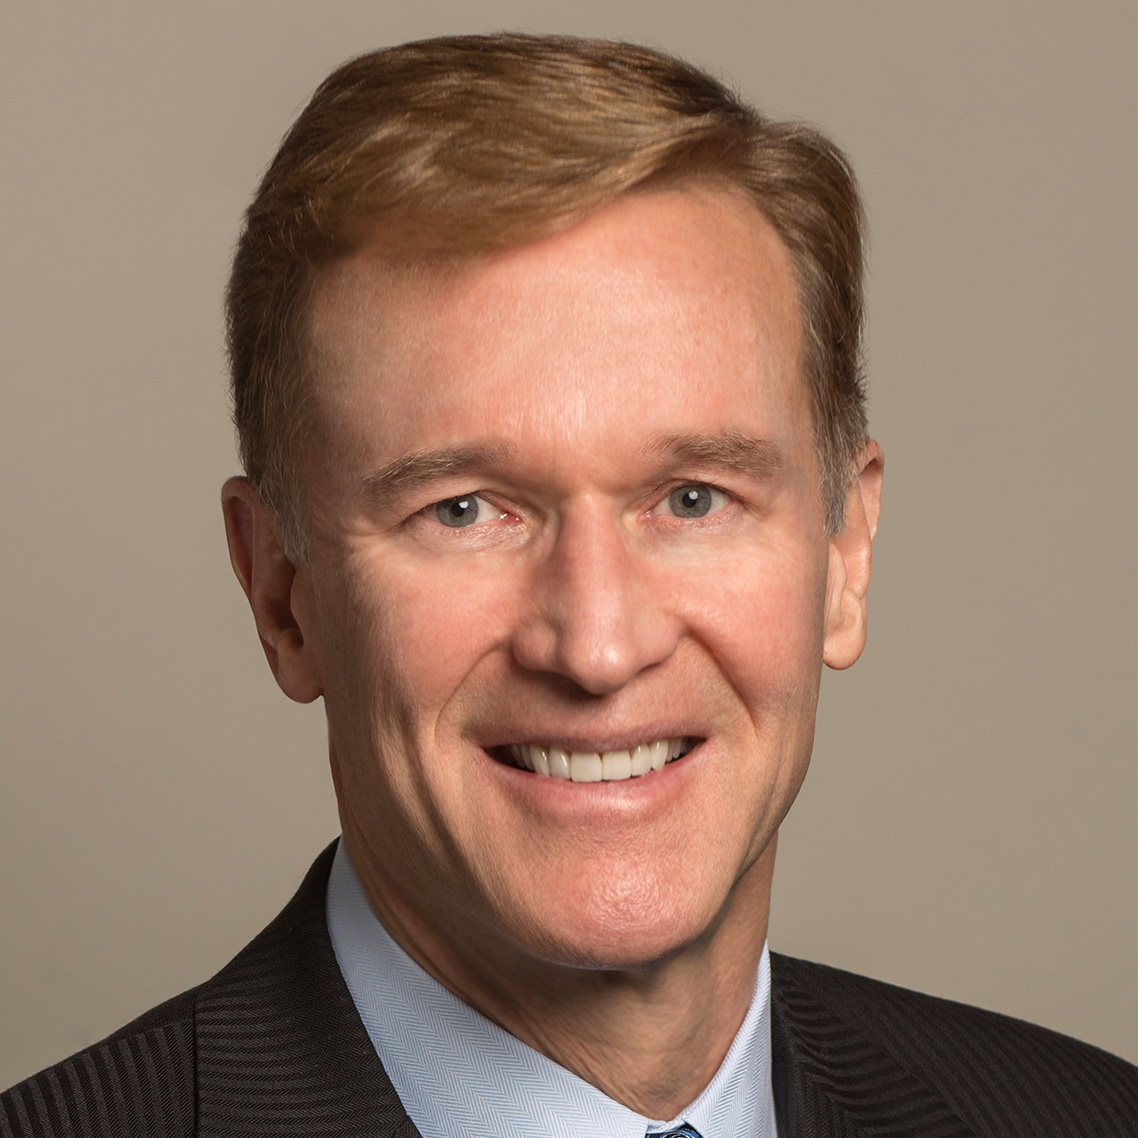 Wendell Weeks, Chairman, Chief Executive Officer, and President